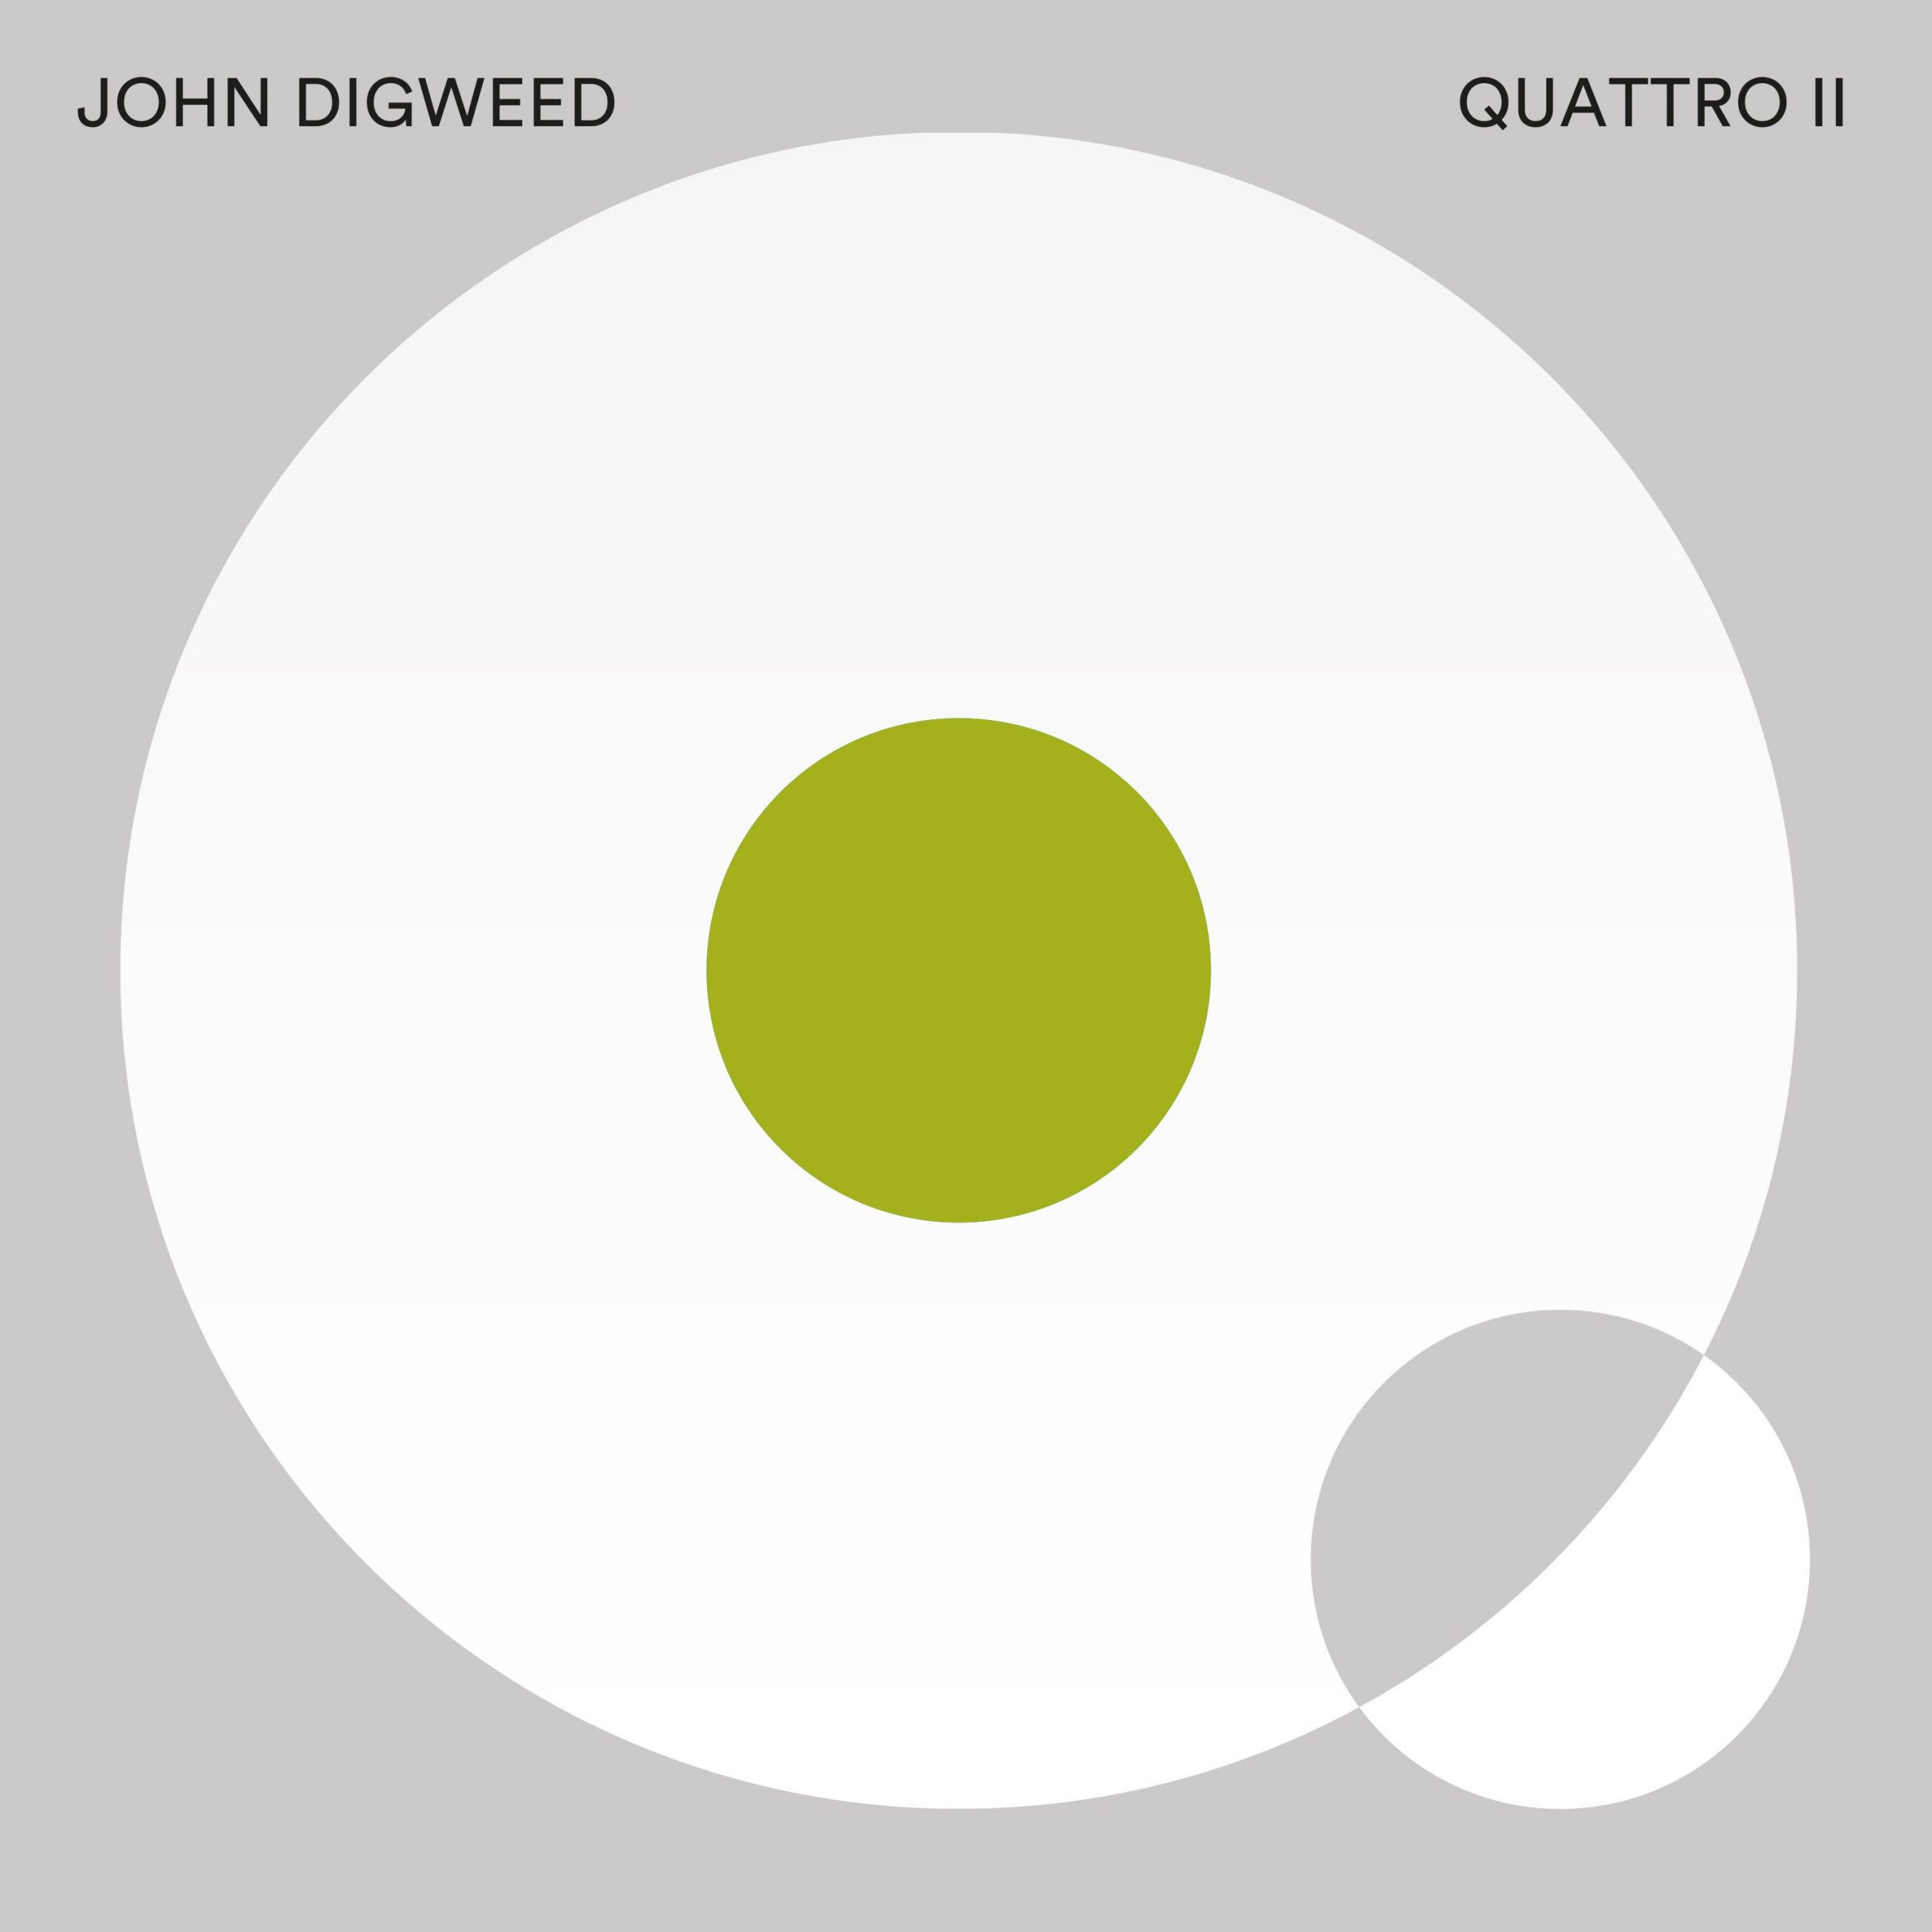 John Digweed Delivers 4-Disc Compilation, 'Quattro II' with 50 Unreleased Tracks from Josh Wink, Guy Mantzur, Dino Lenny & more